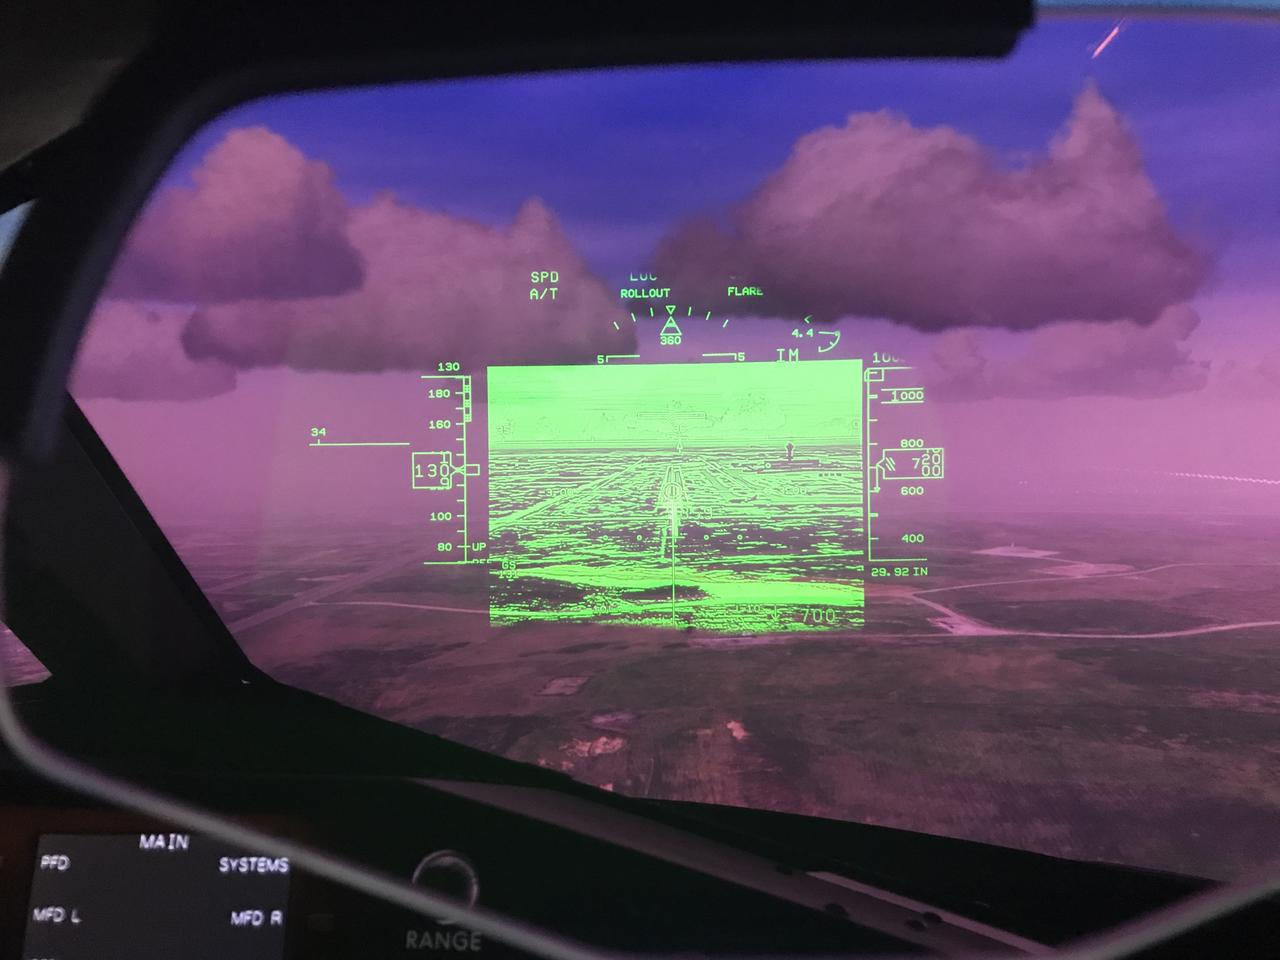 April May 2018 Synthetic Vision A Must Have For The Next Aircraft Hydraulic System Intelligent Diagrams Like Combine This With Evidence Presented To Embry Riddles 2017 National Training Symposium Geoffrey Murray An Aerospace Sector Leader Aviation Consulting